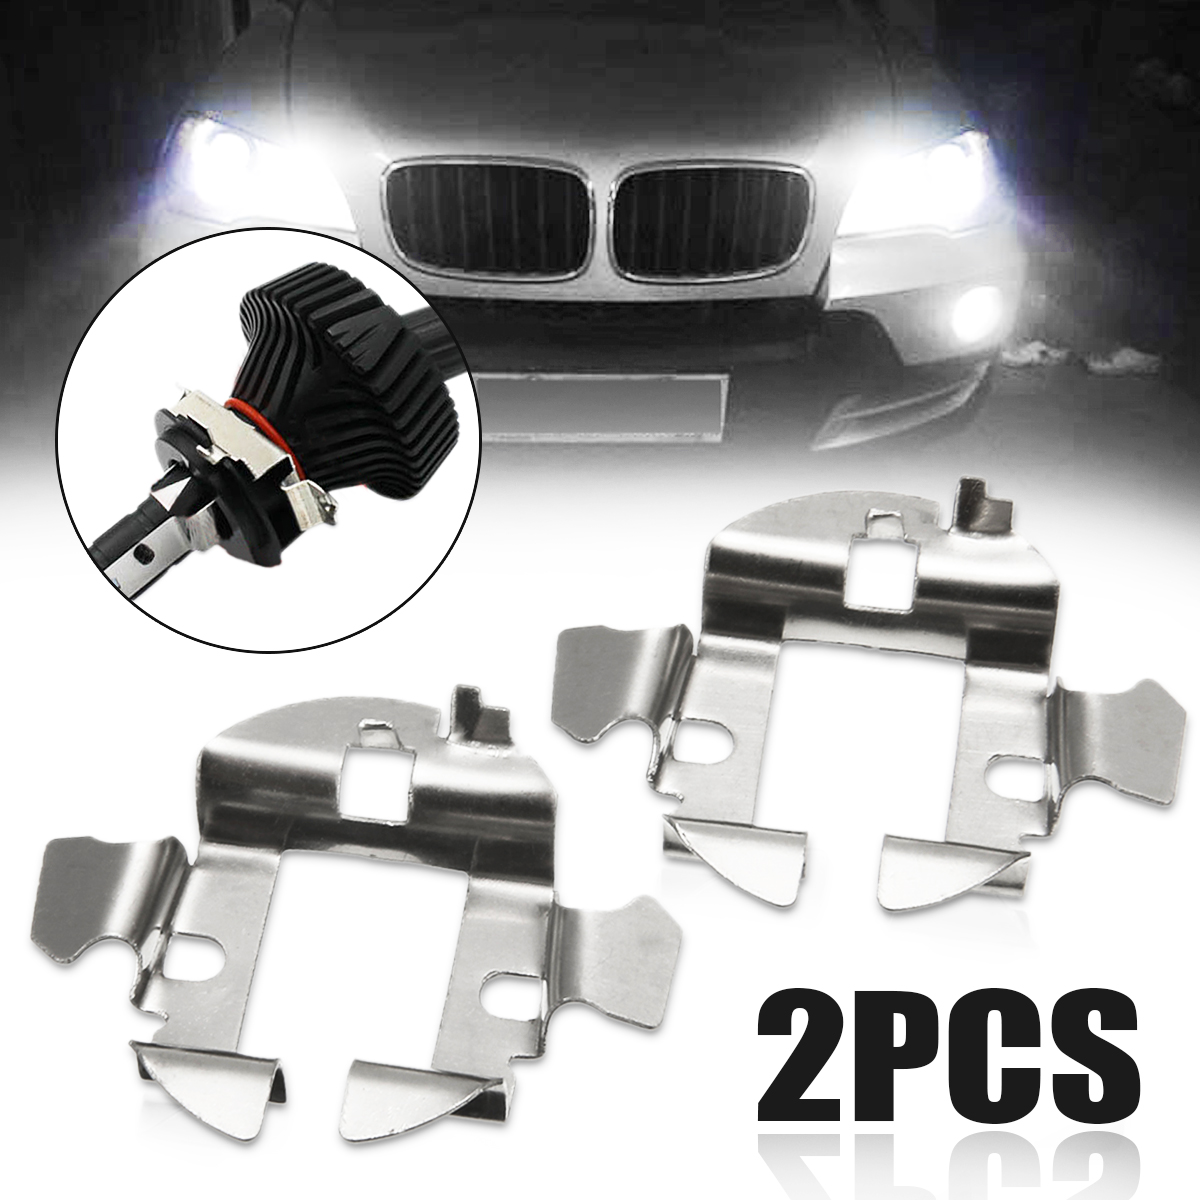 H7 HID Xenon Base Adapter Bulb Retainer Holder Clip for Audi A6 BMW 5 Series X5